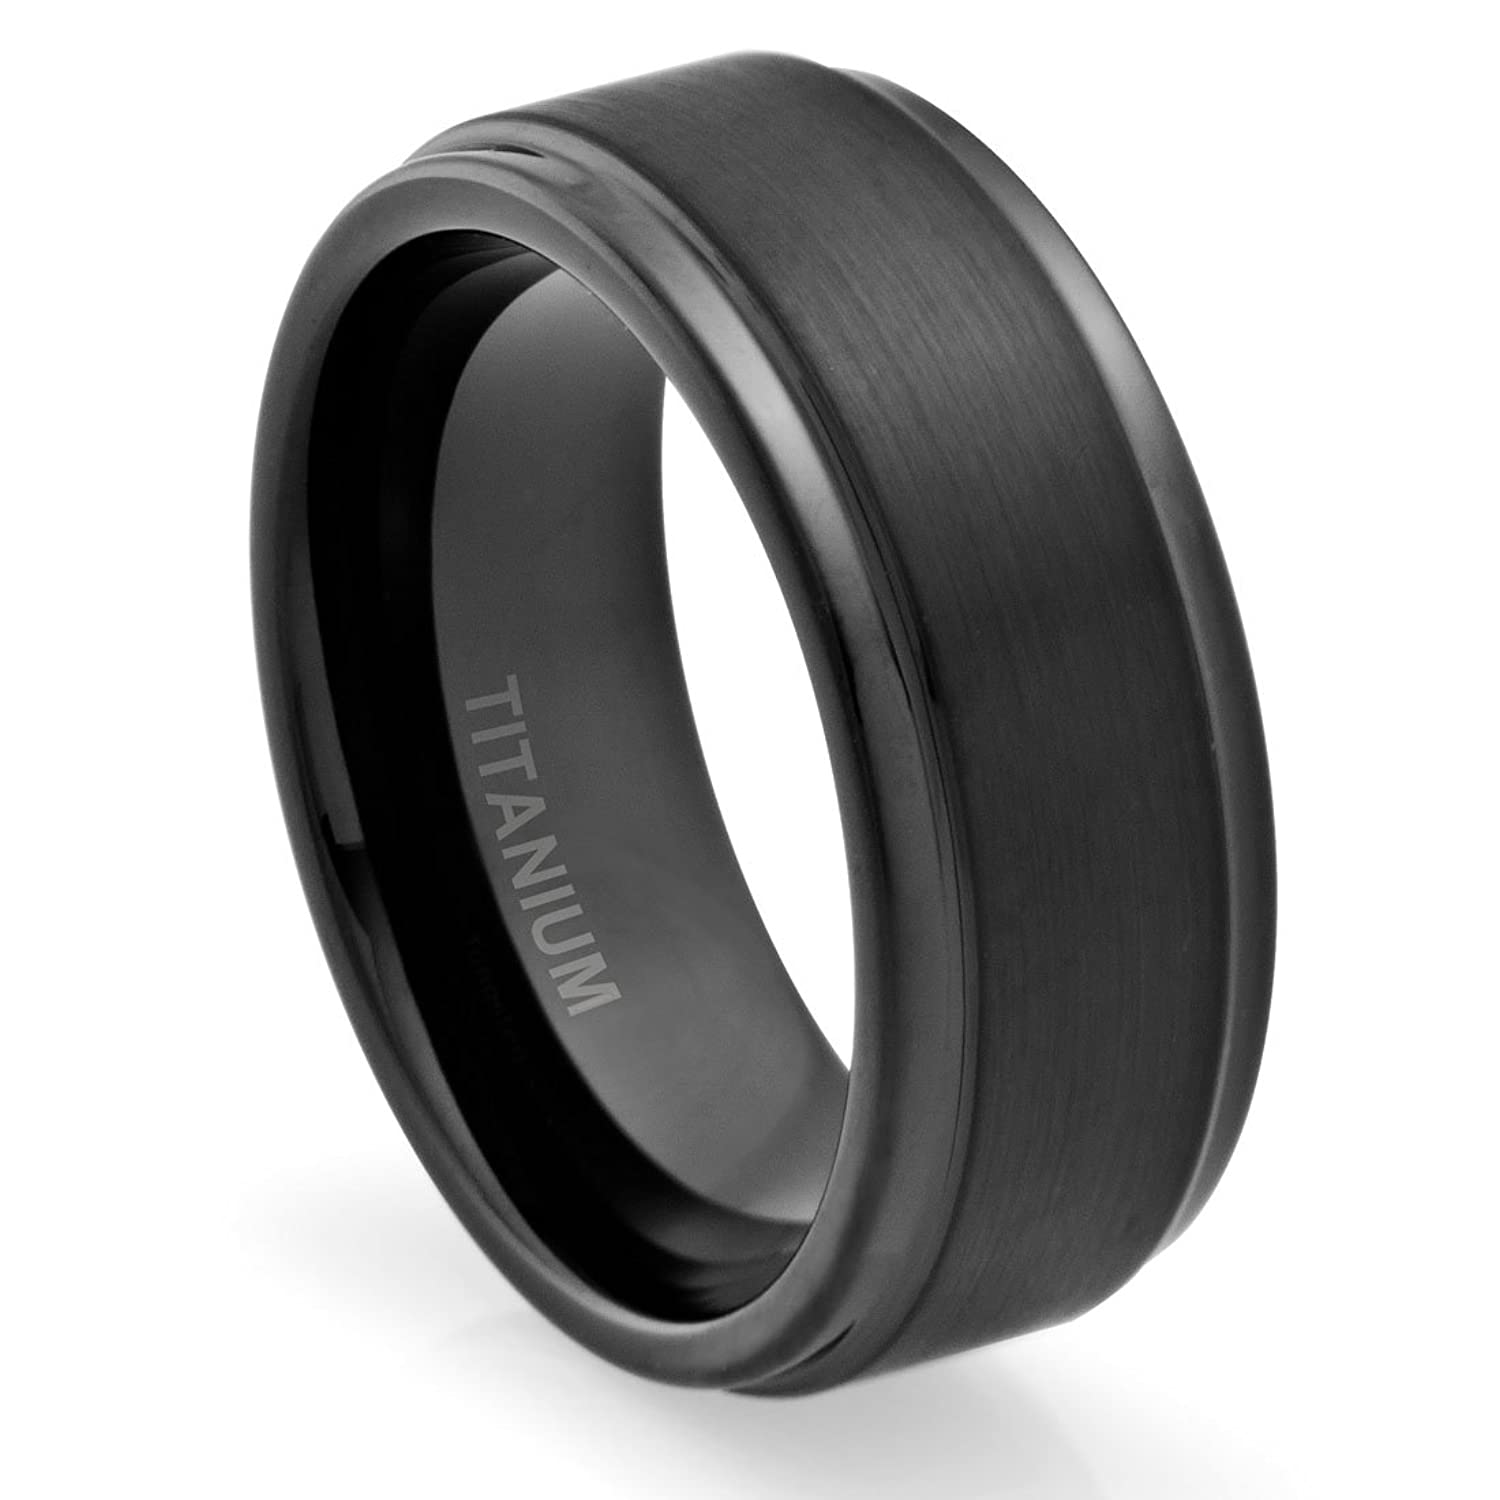 polished titanium wedding rings mens titanium wedding band Polished titanium wedding rings